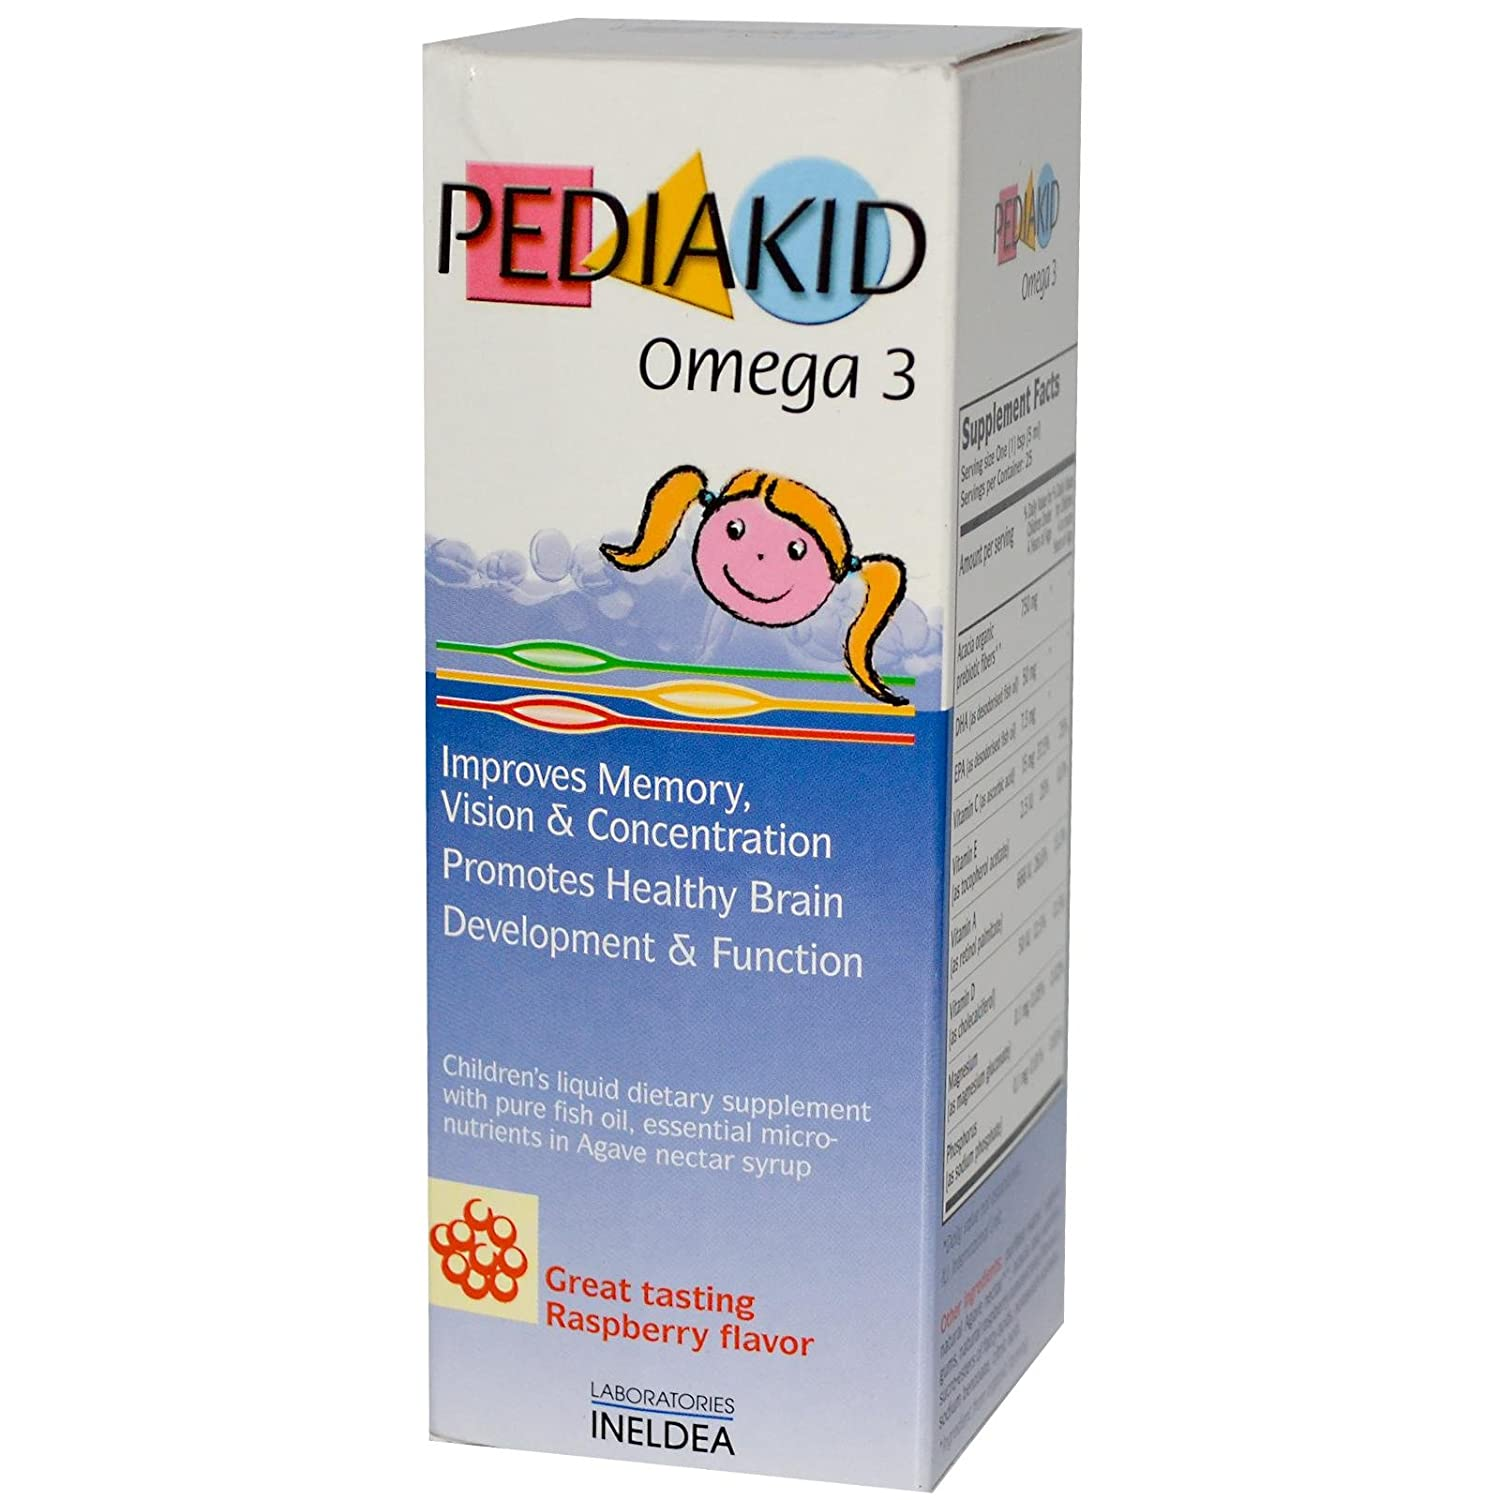 Amazon.com: Pediakid Omega 3 Fish Oil Natural Liquid Children Vitamins to Promote Healthy Development and Brain Growth: Health & Personal Care